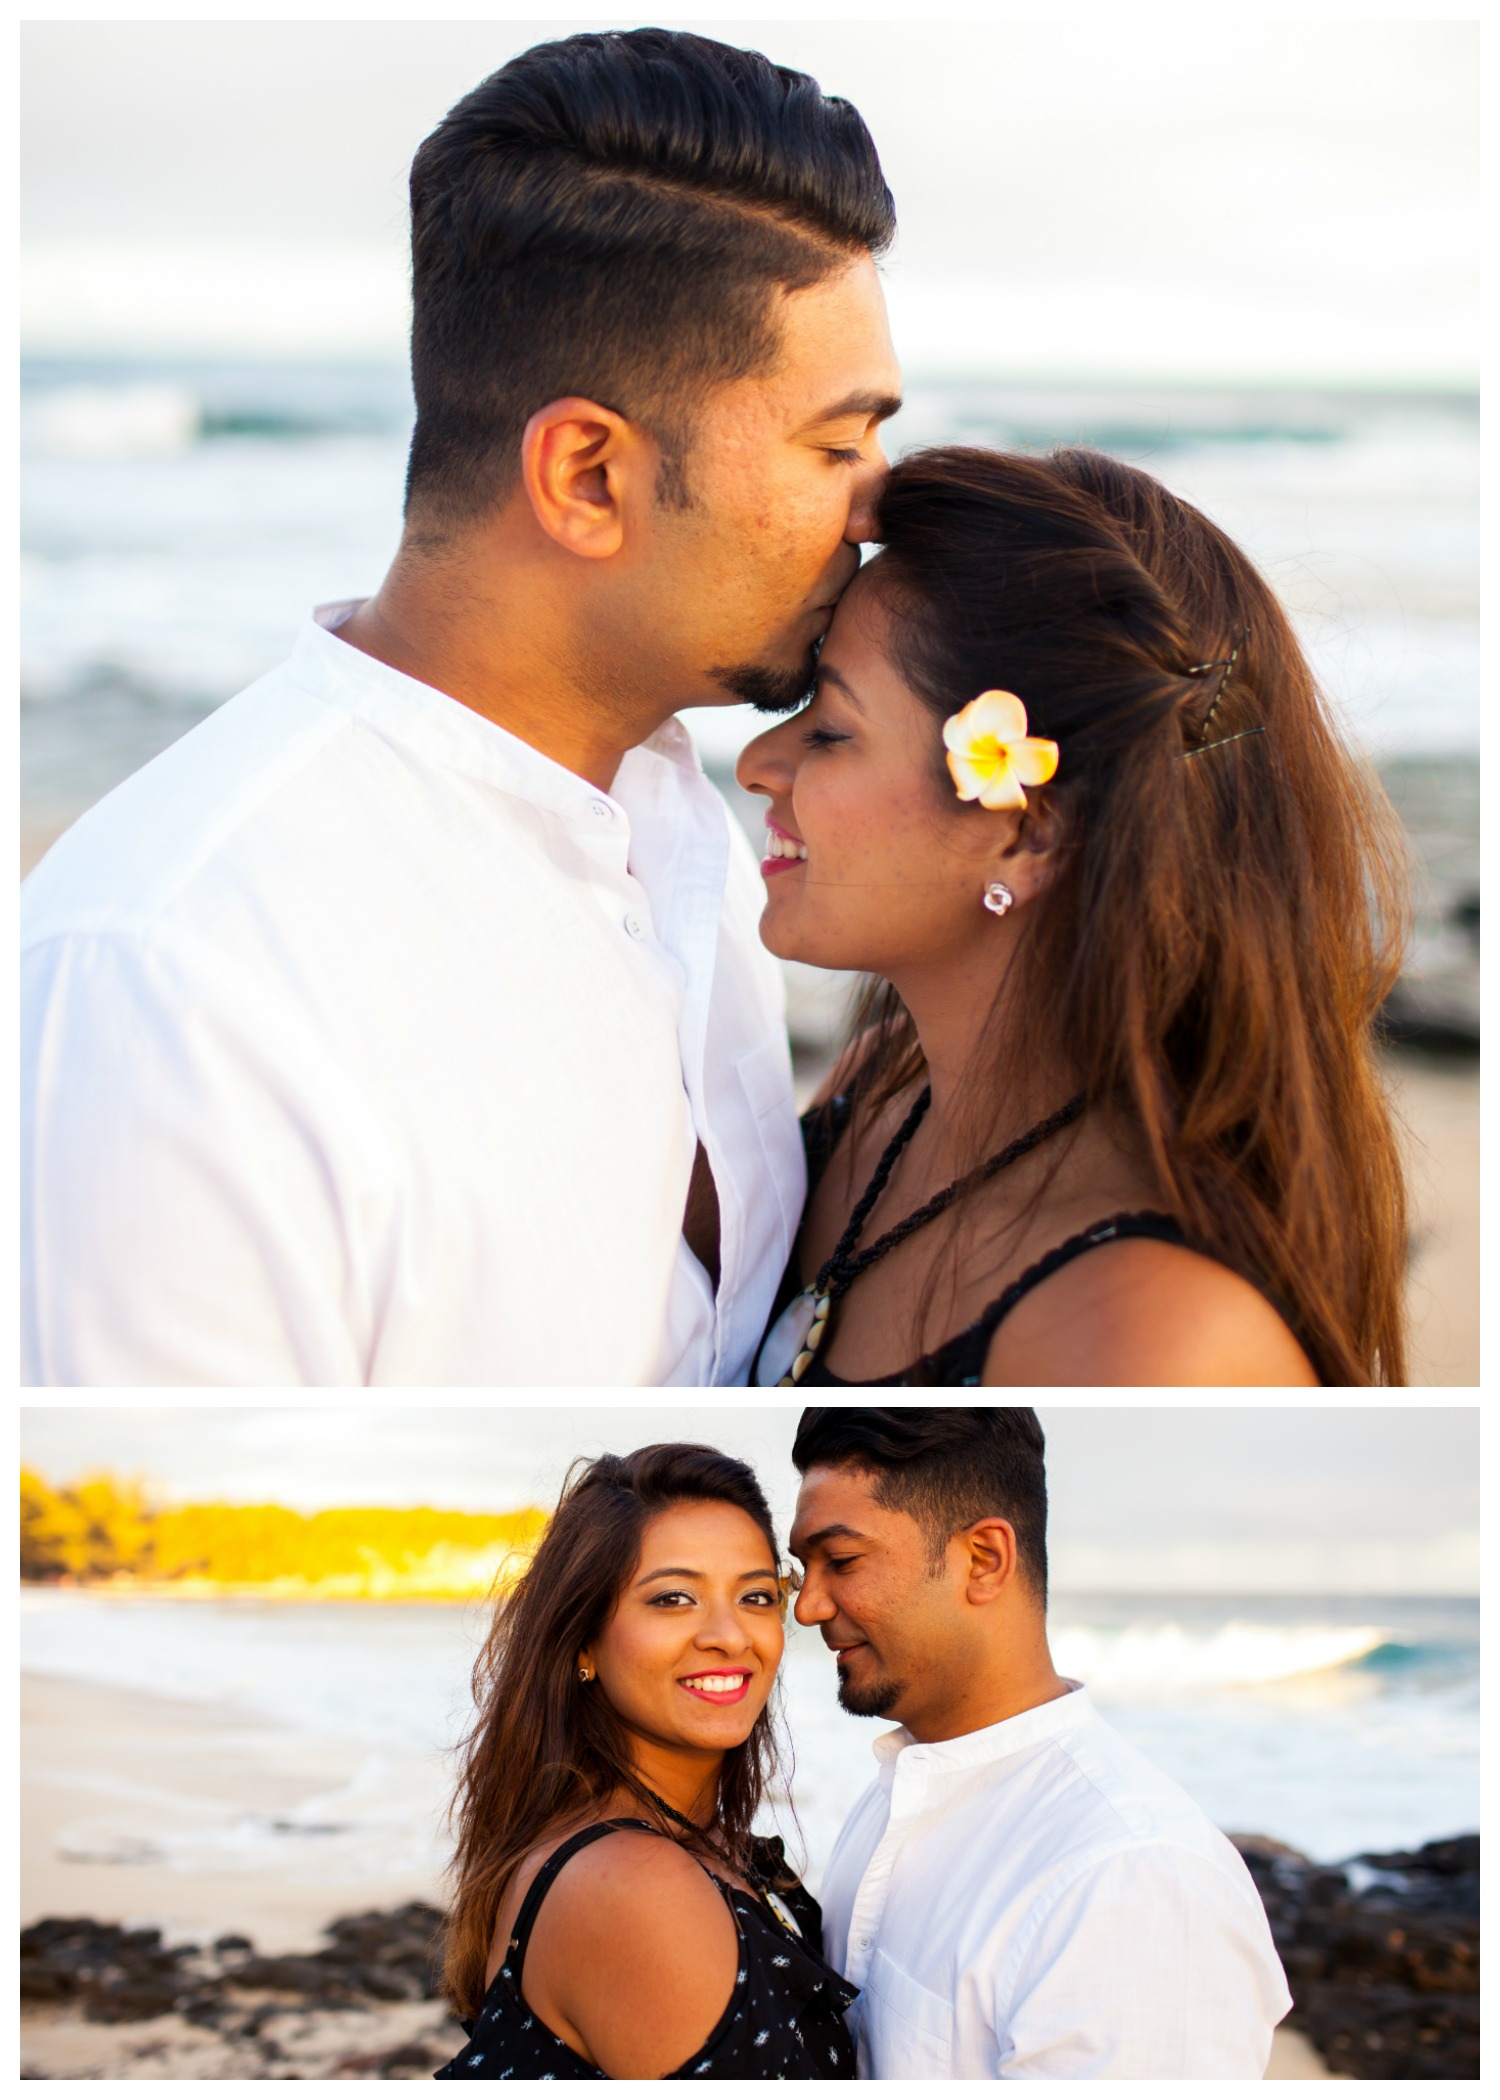 Pacific Dream Photography - Hawaii Photographer - Portrait Photographer - Engagement Photographer - Kauai Photographer